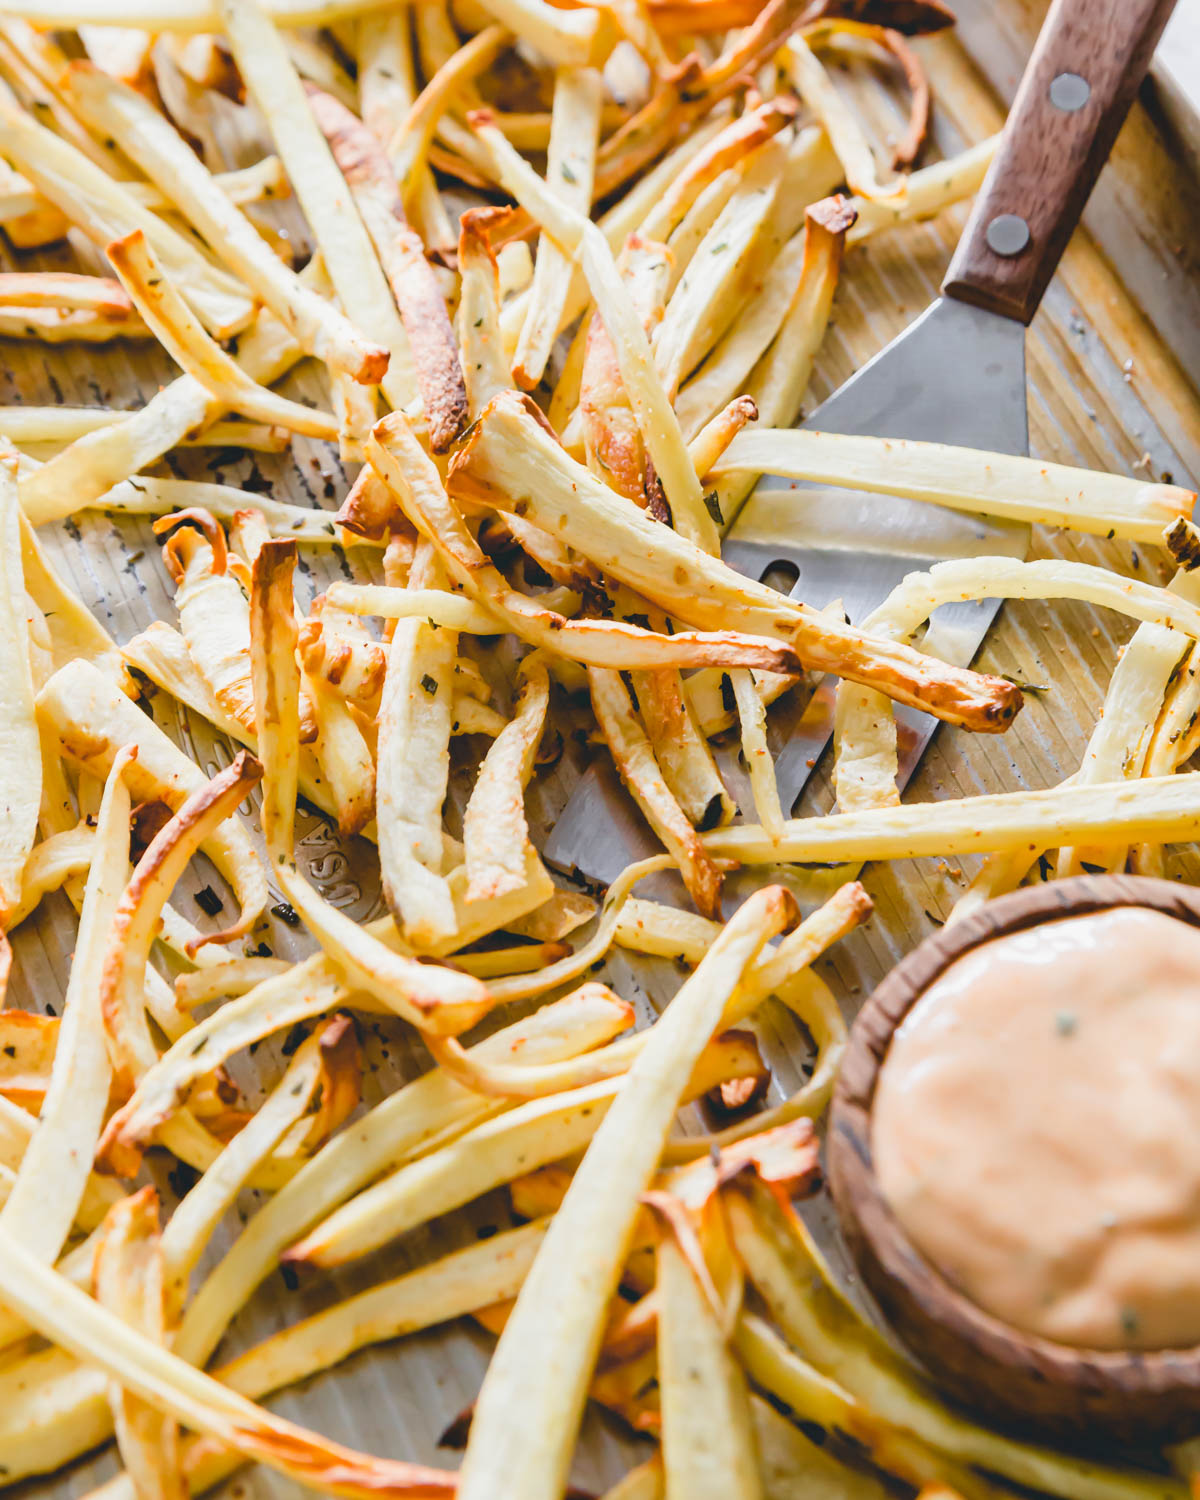 Crispy golden brown parsnip fries straight out of the air fryer and oven on a baking sheet with fry sauce and a spatula for serving.